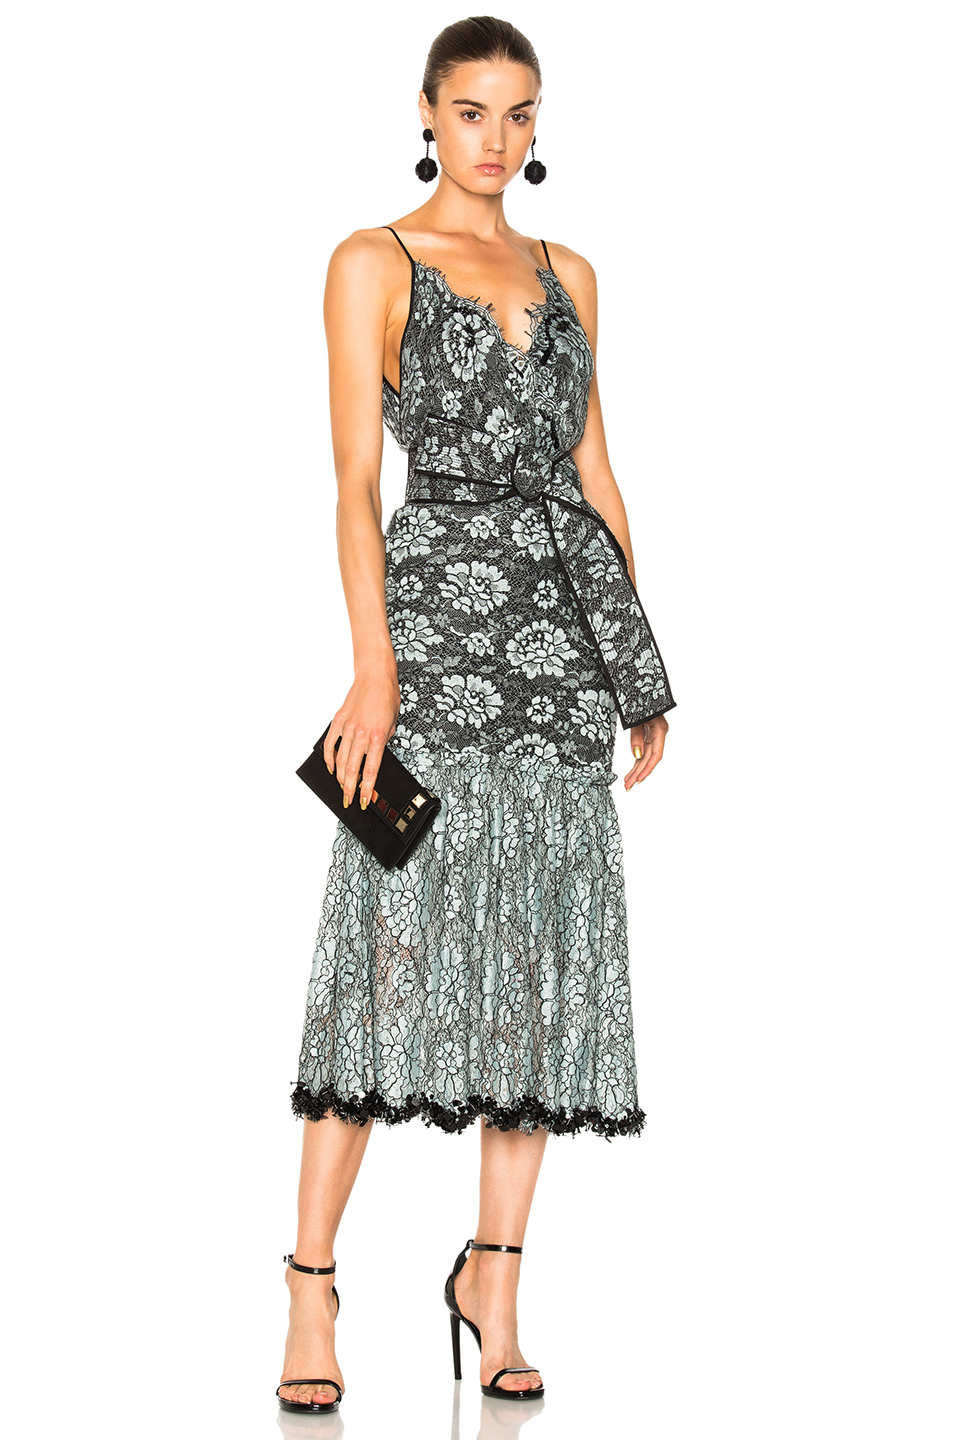 Johanna Ortiz Frontera Lace Embroidered Dress in Blue,Floral